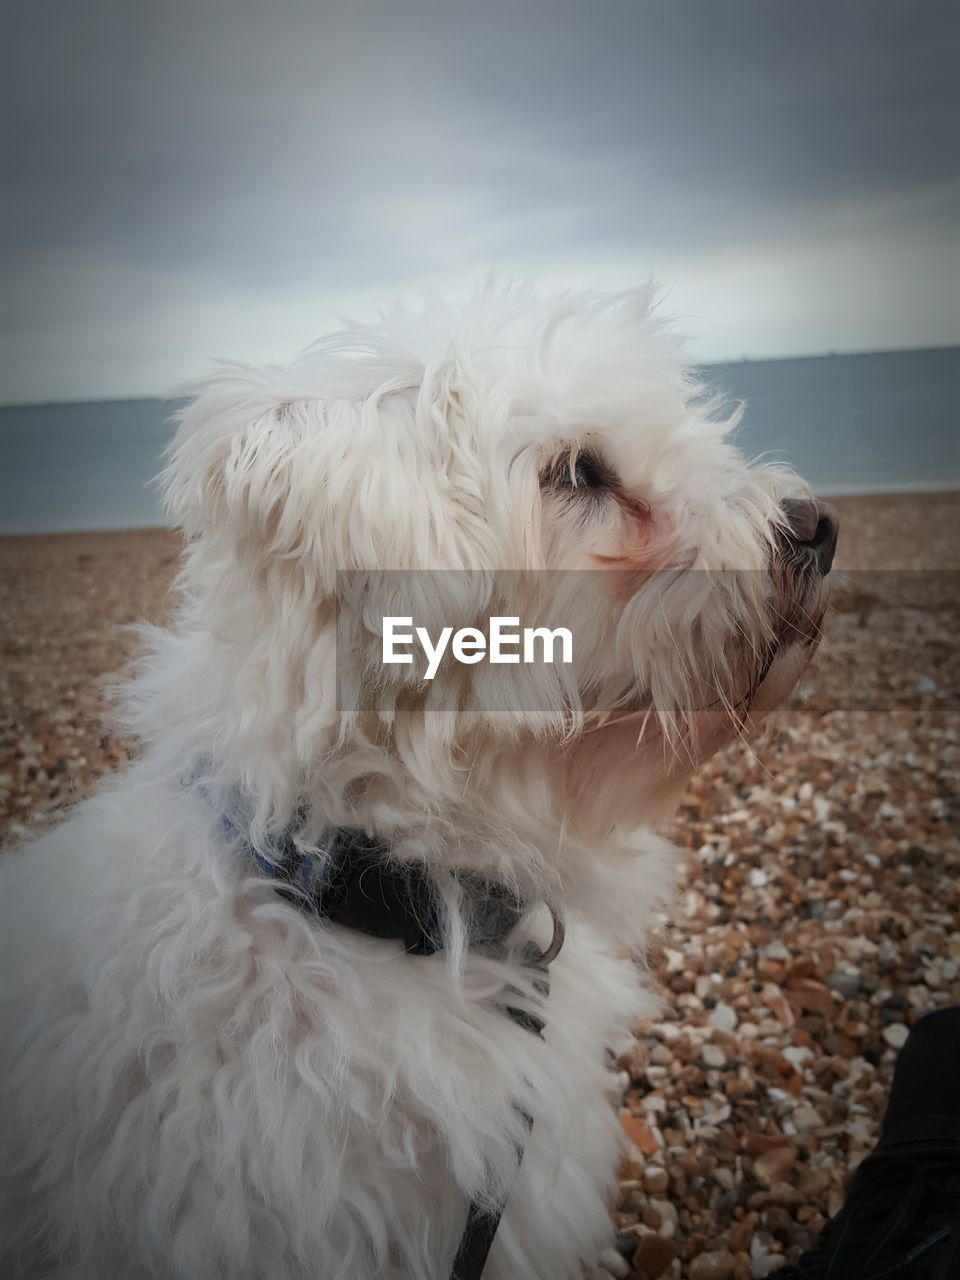 canine, dog, domestic, domestic animals, pets, one animal, animal themes, mammal, animal, vertebrate, no people, animal hair, white color, hair, close-up, sky, day, lap dog, focus on foreground, sea, small, animal head